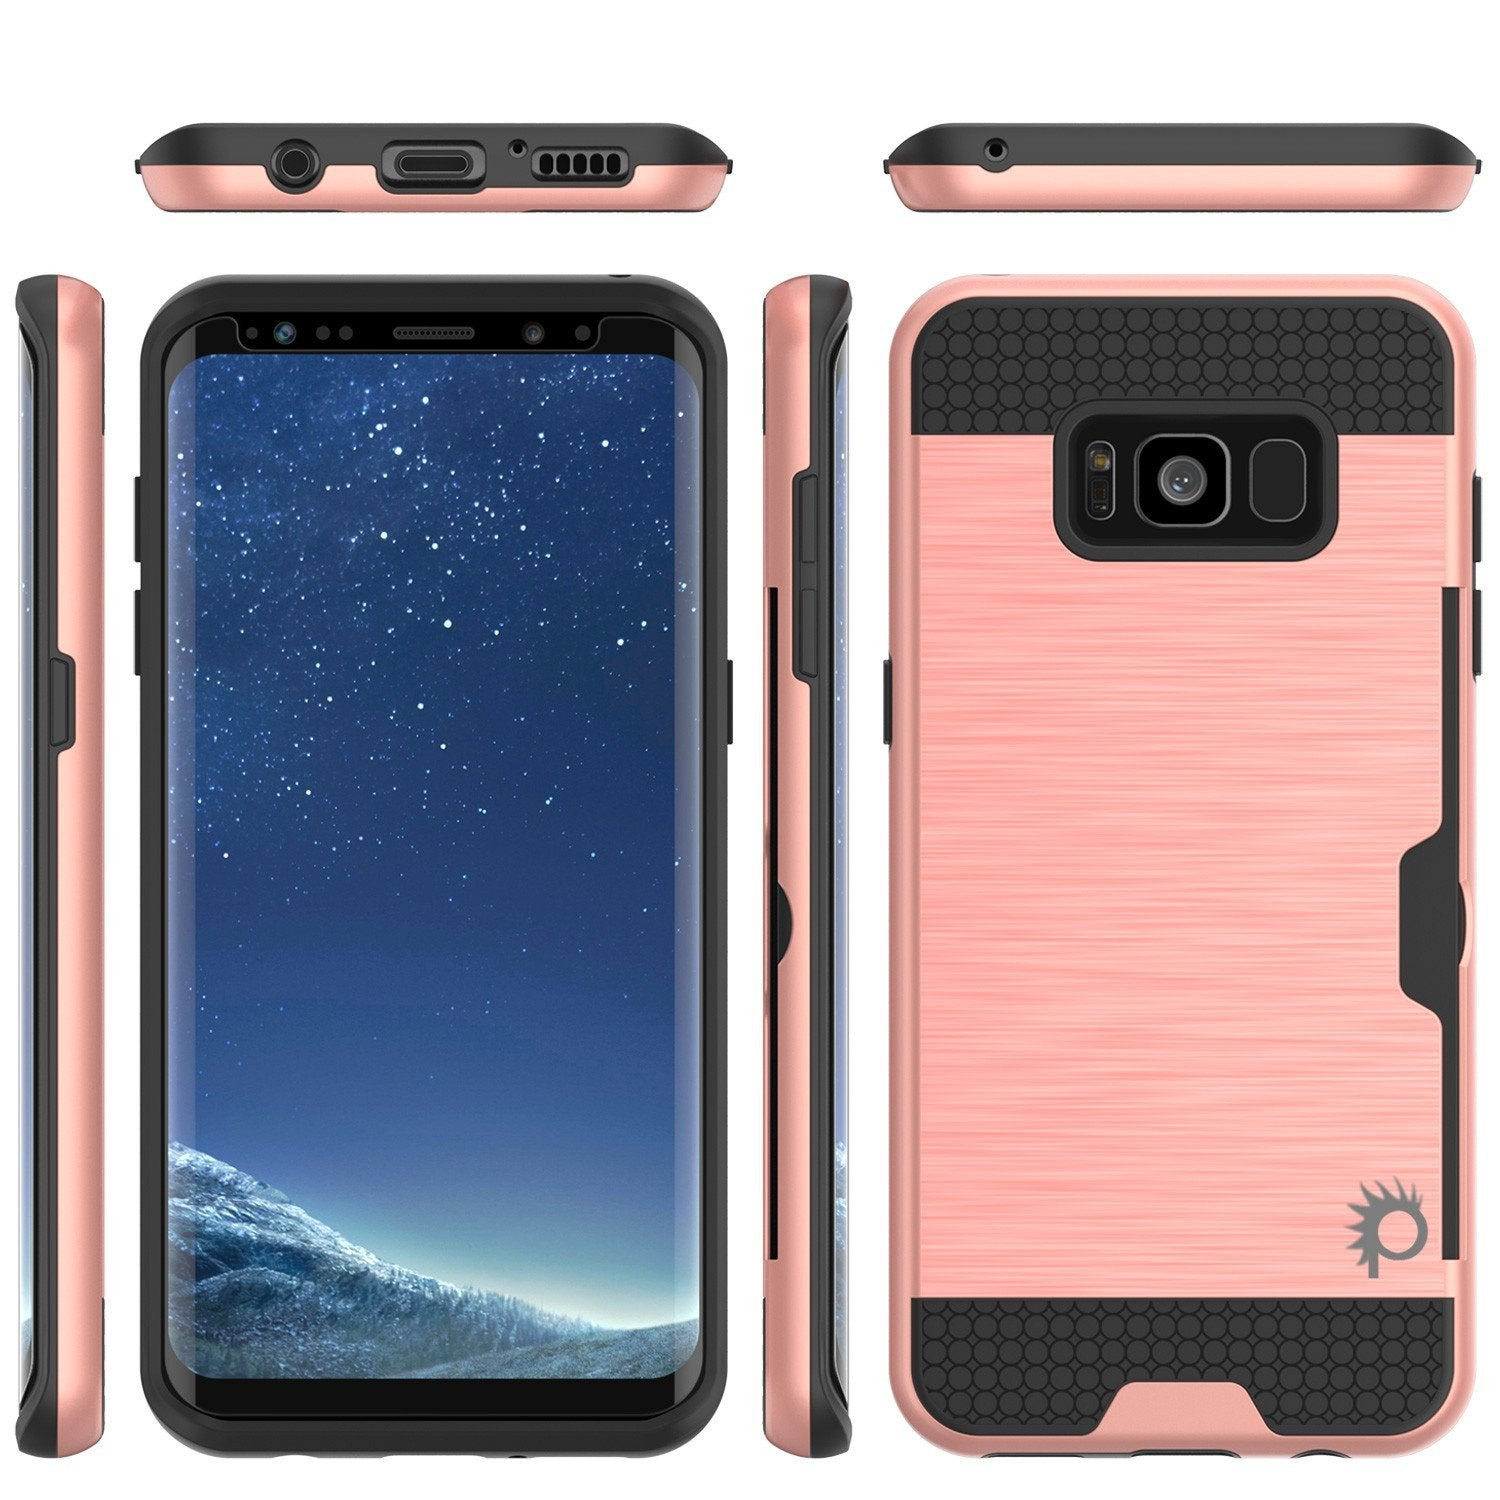 Galaxy S8 Case, PUNKcase [SLOT Series] [Slim Fit] Dual-Layer Armor Cover w/Integrated Anti-Shock System, Credit Card Slot & PUNKSHIELD Screen Protector for Samsung Galaxy S8[Rose Gold] - PunkCase NZ